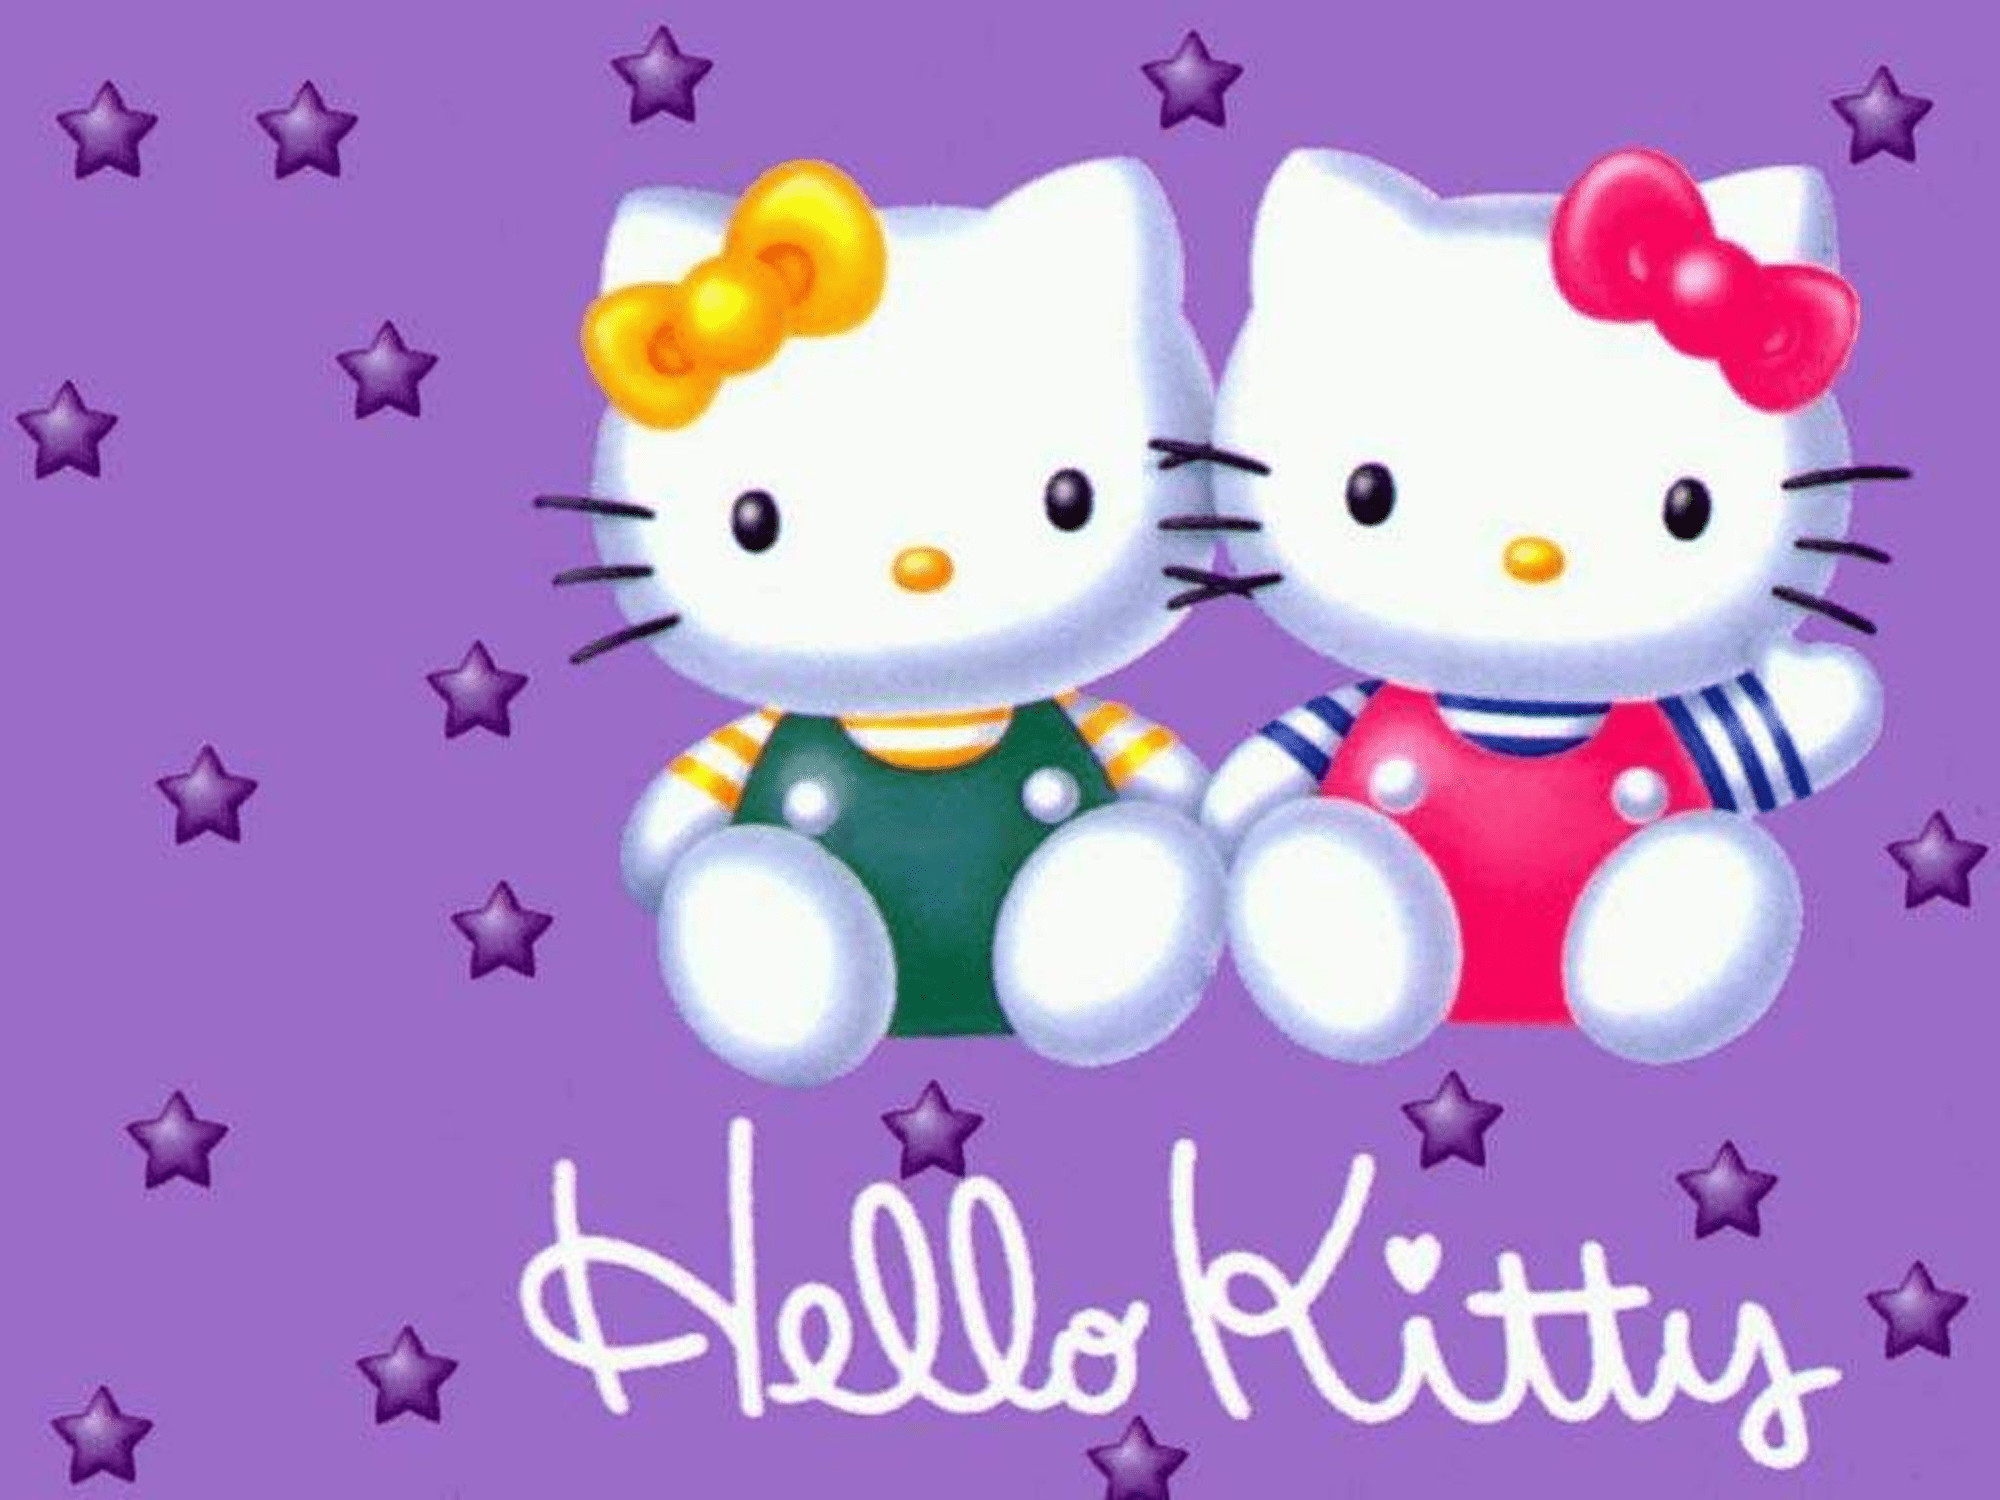 Cute Colourful Wallpapers Free Download Hello Kitty Fall Wallpaper 183 ① Wallpapertag